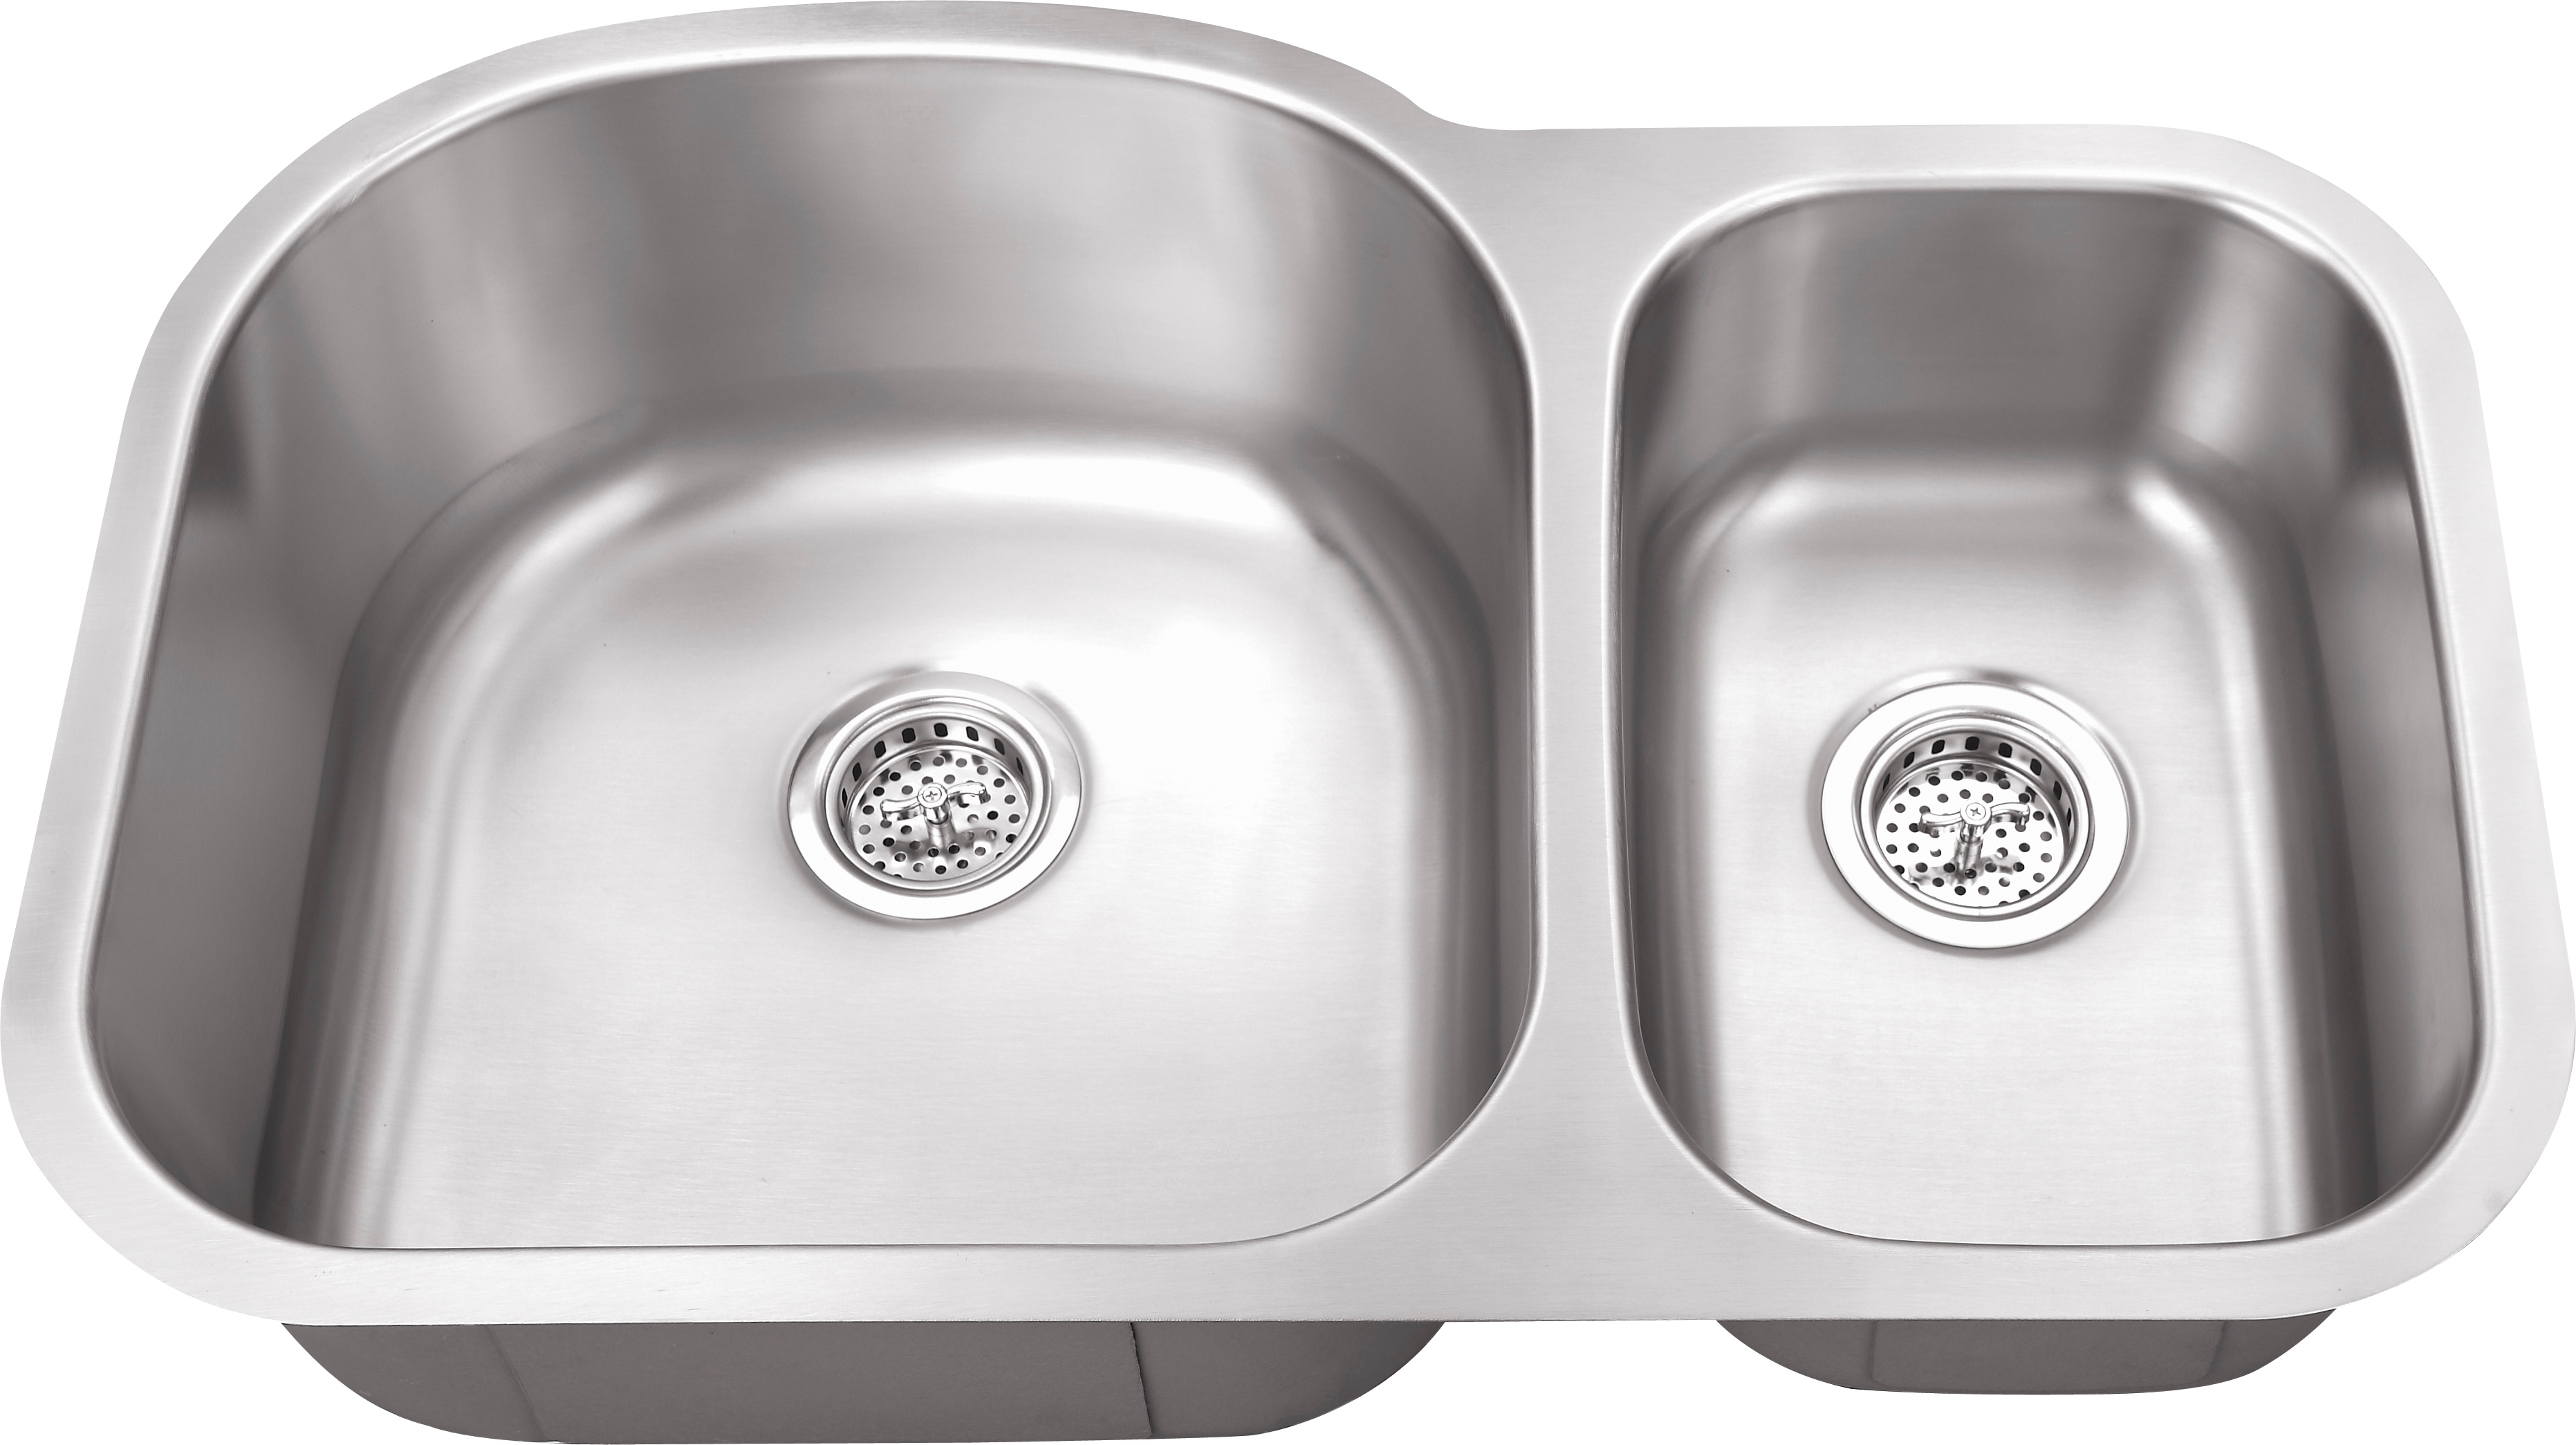 Sinks & Faucets | Pittsburgh Kitchenramma LLC